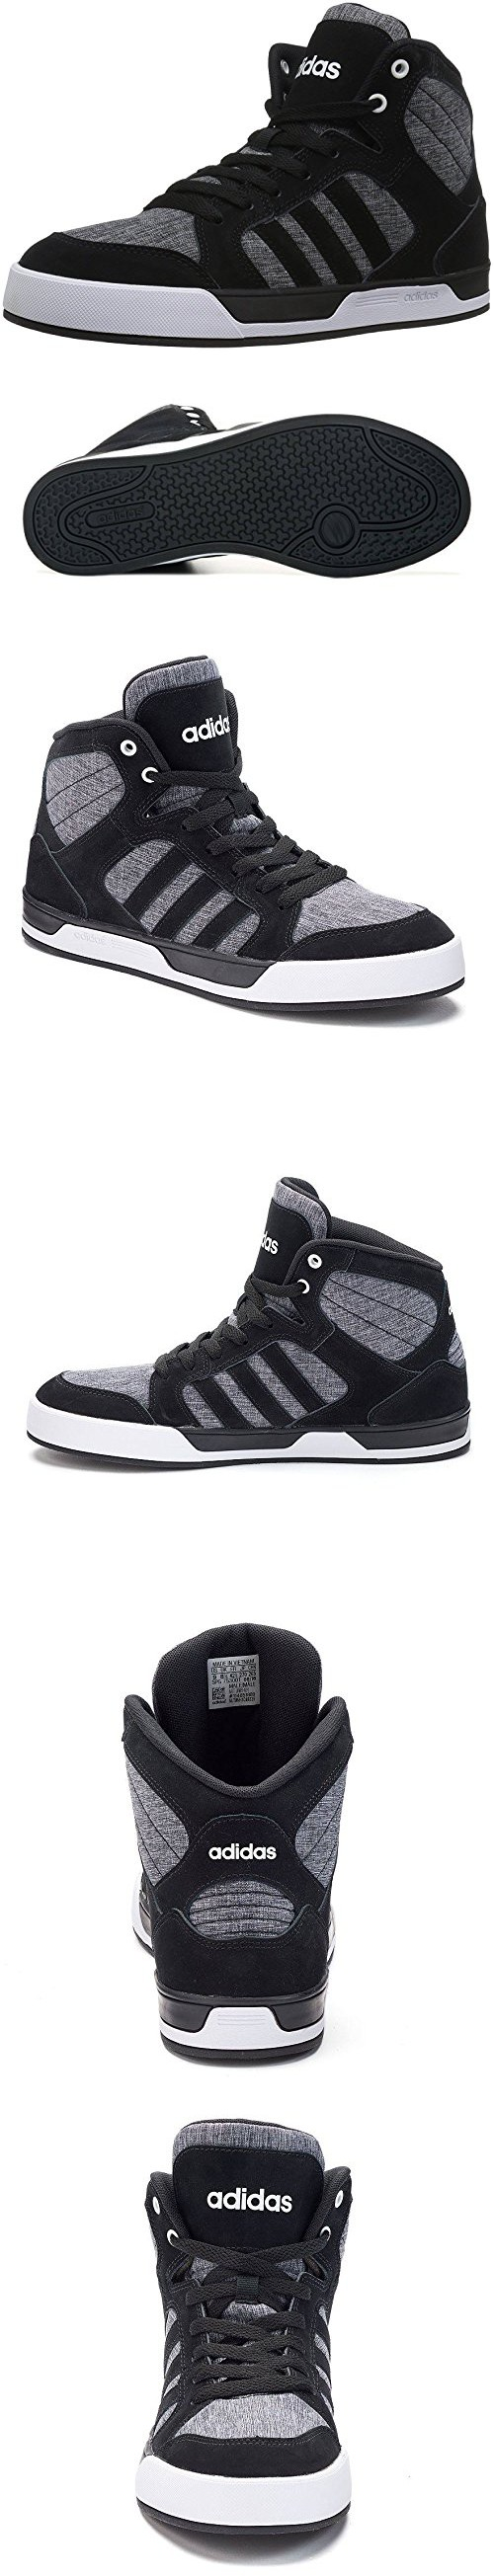 Adidas NEO Men's Raleigh Mid Lace Up Shoe (10 D(M) US, Grey